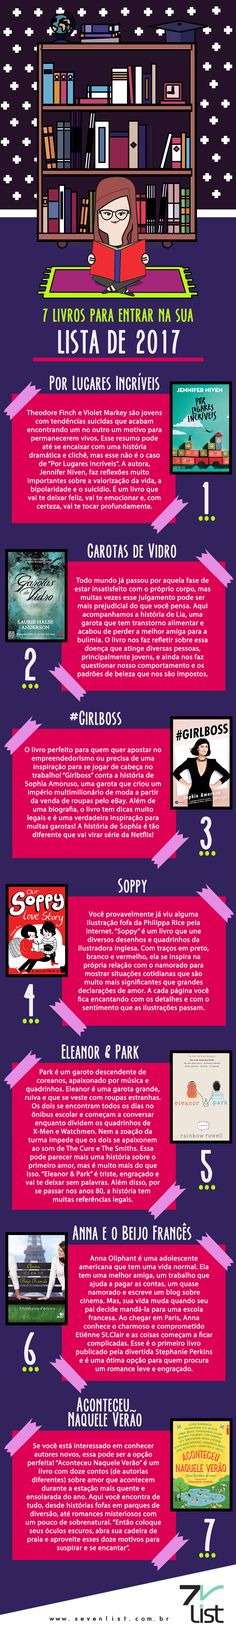 7 livros para entrar na sua lista de 2017 I Love Books, Good Books, Books To Read, My Books, Book Challenge, Thing 1, Some Quotes, Student Life, Staying Alive